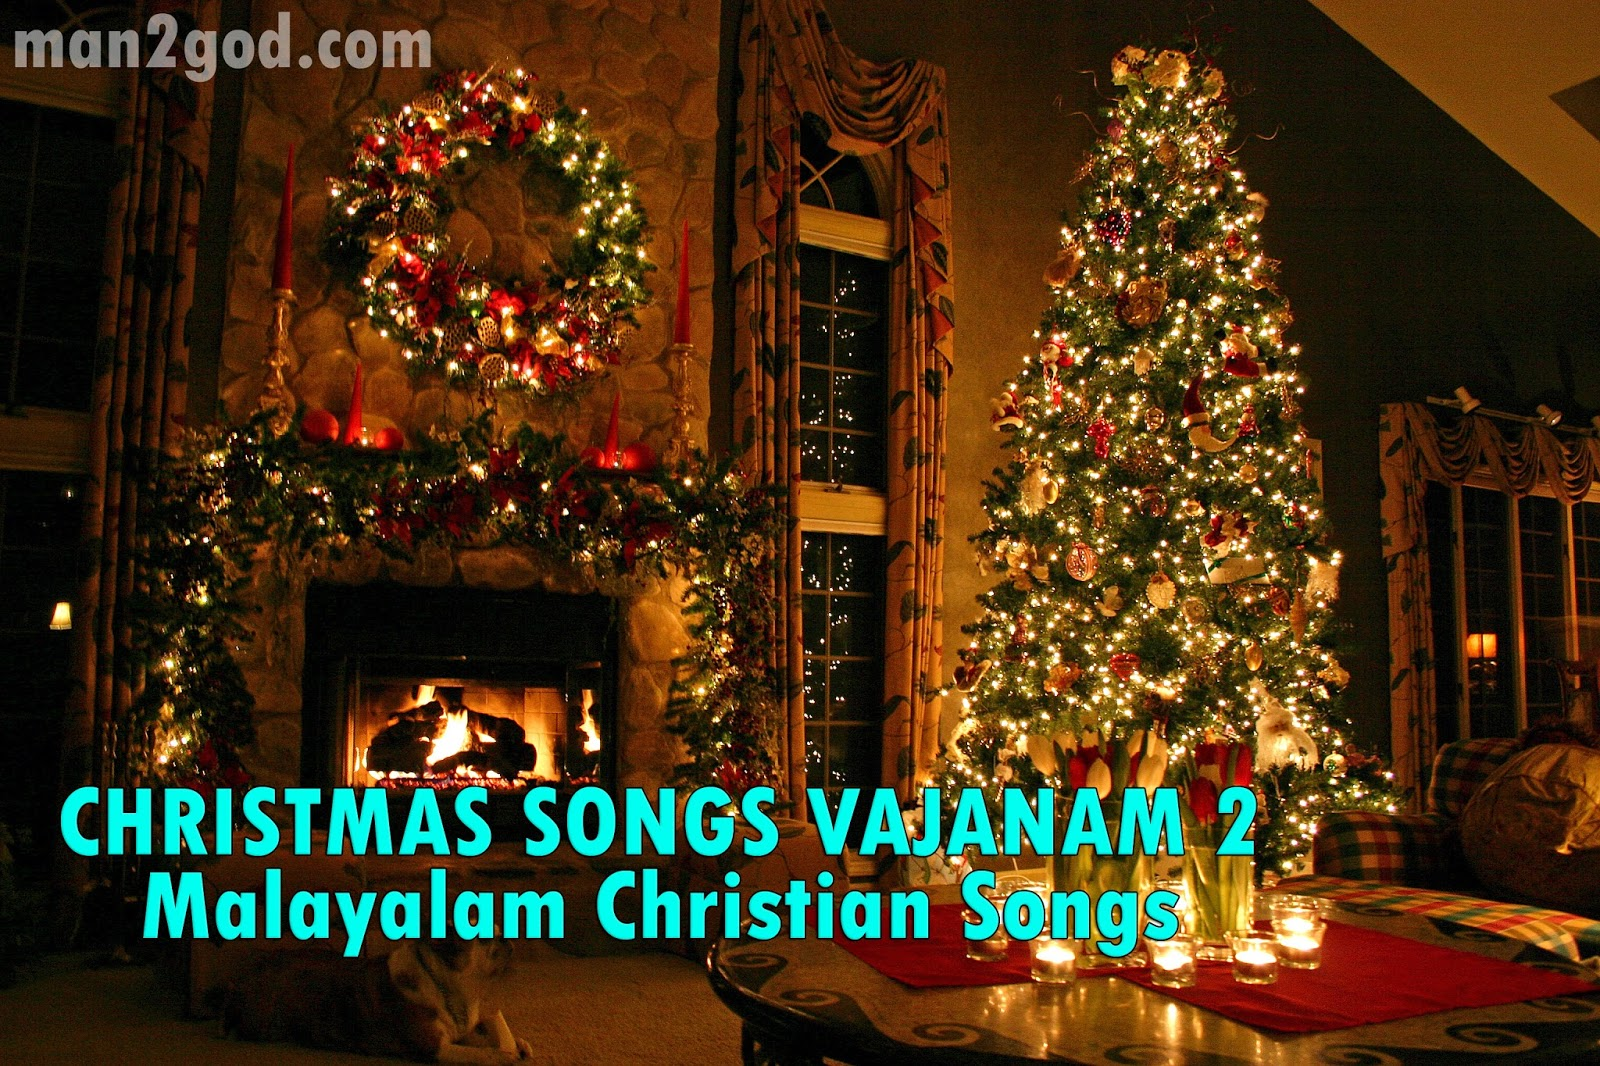 christmas songs vajanam 2 malayalam christian songs free download